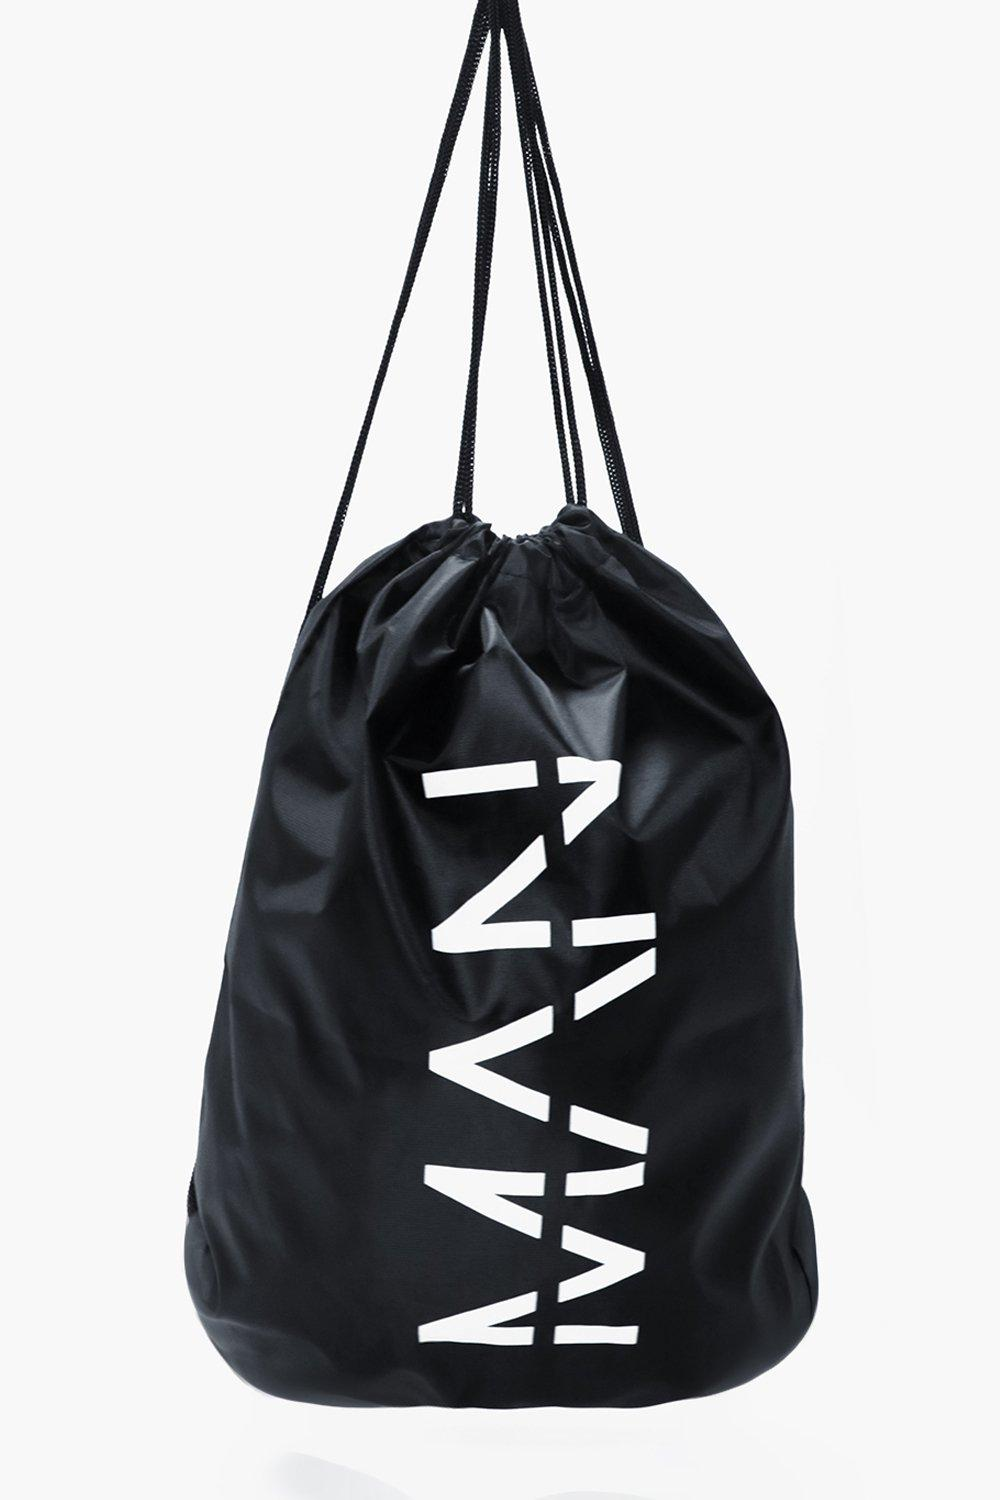 MAN Drawstring Bag - black - Black MAN Drawstring